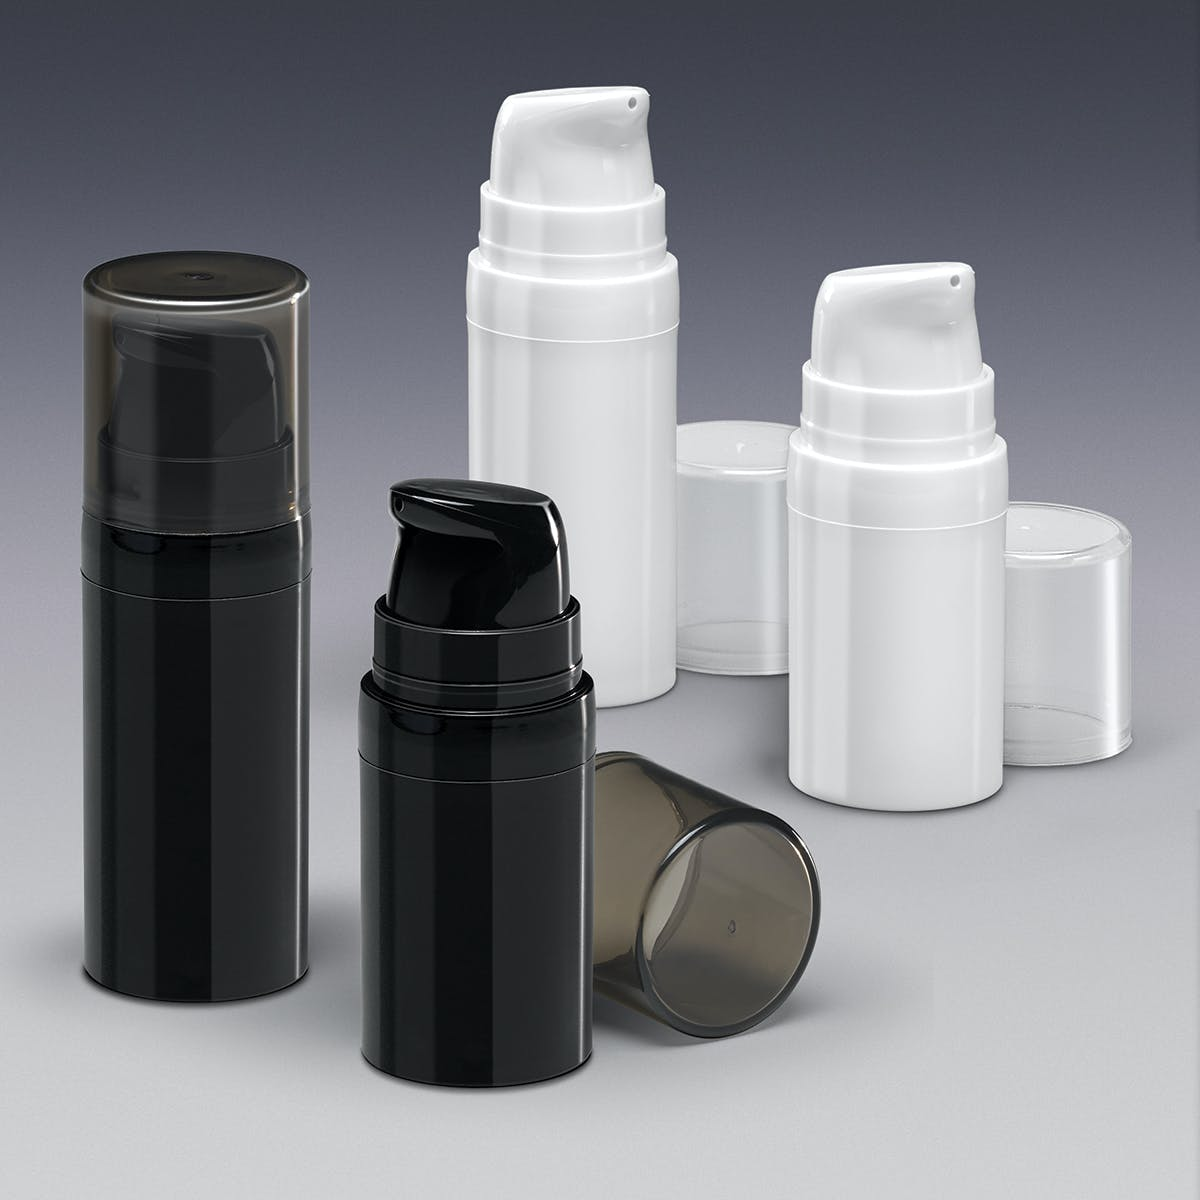 Airless Bottle Collection Cosmetics bottle sold by Qosmedix